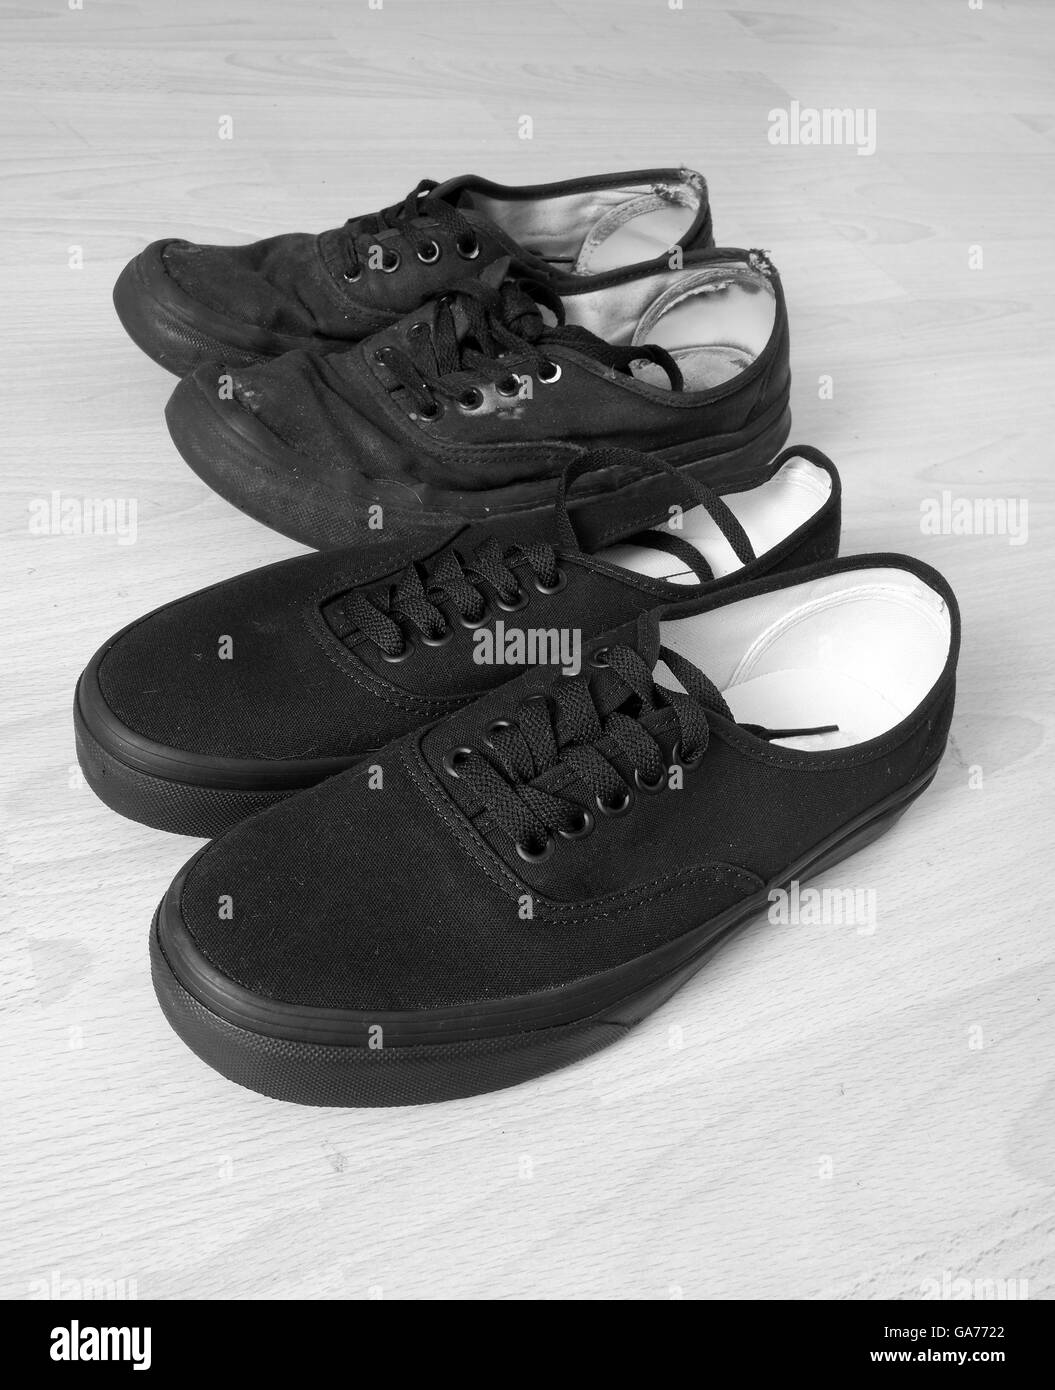 8674d030b12400 Trainers Black and White Stock Photos   Images - Alamy